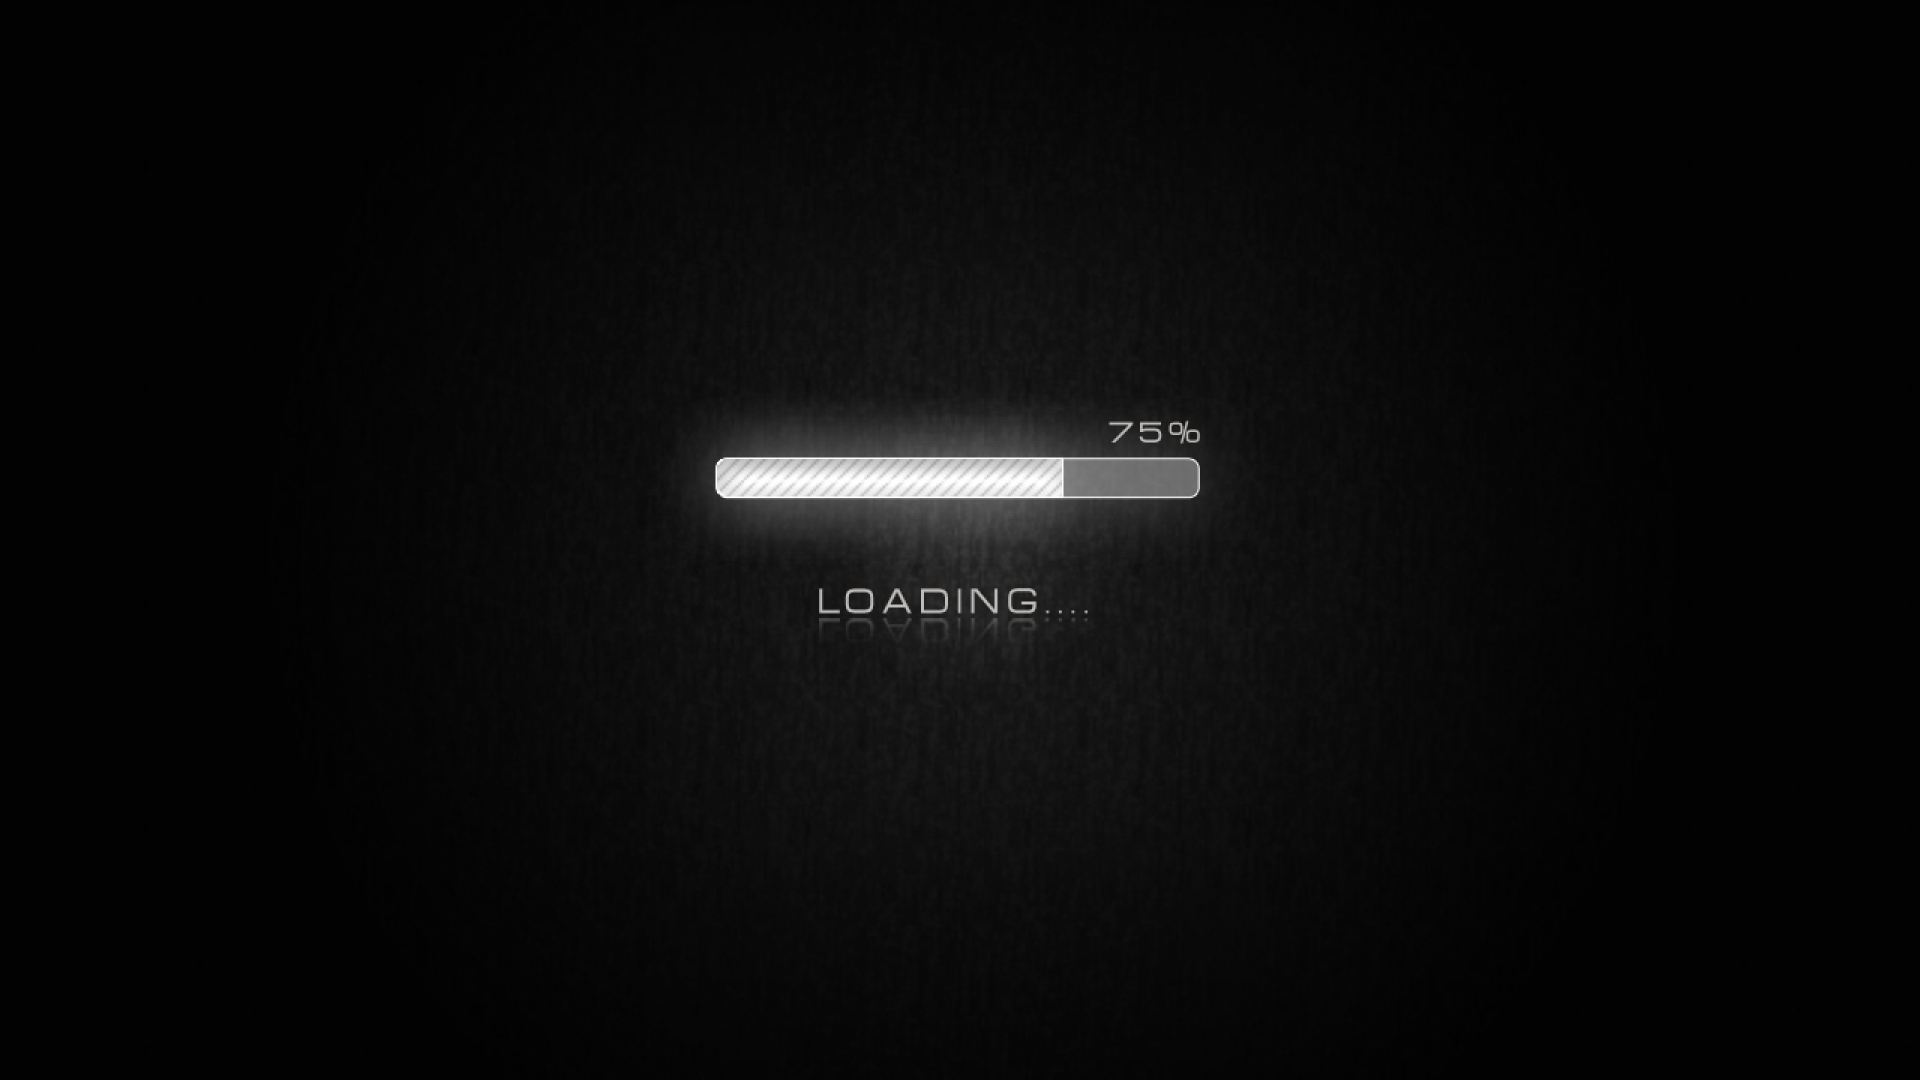 Loading Bar Wallpaper